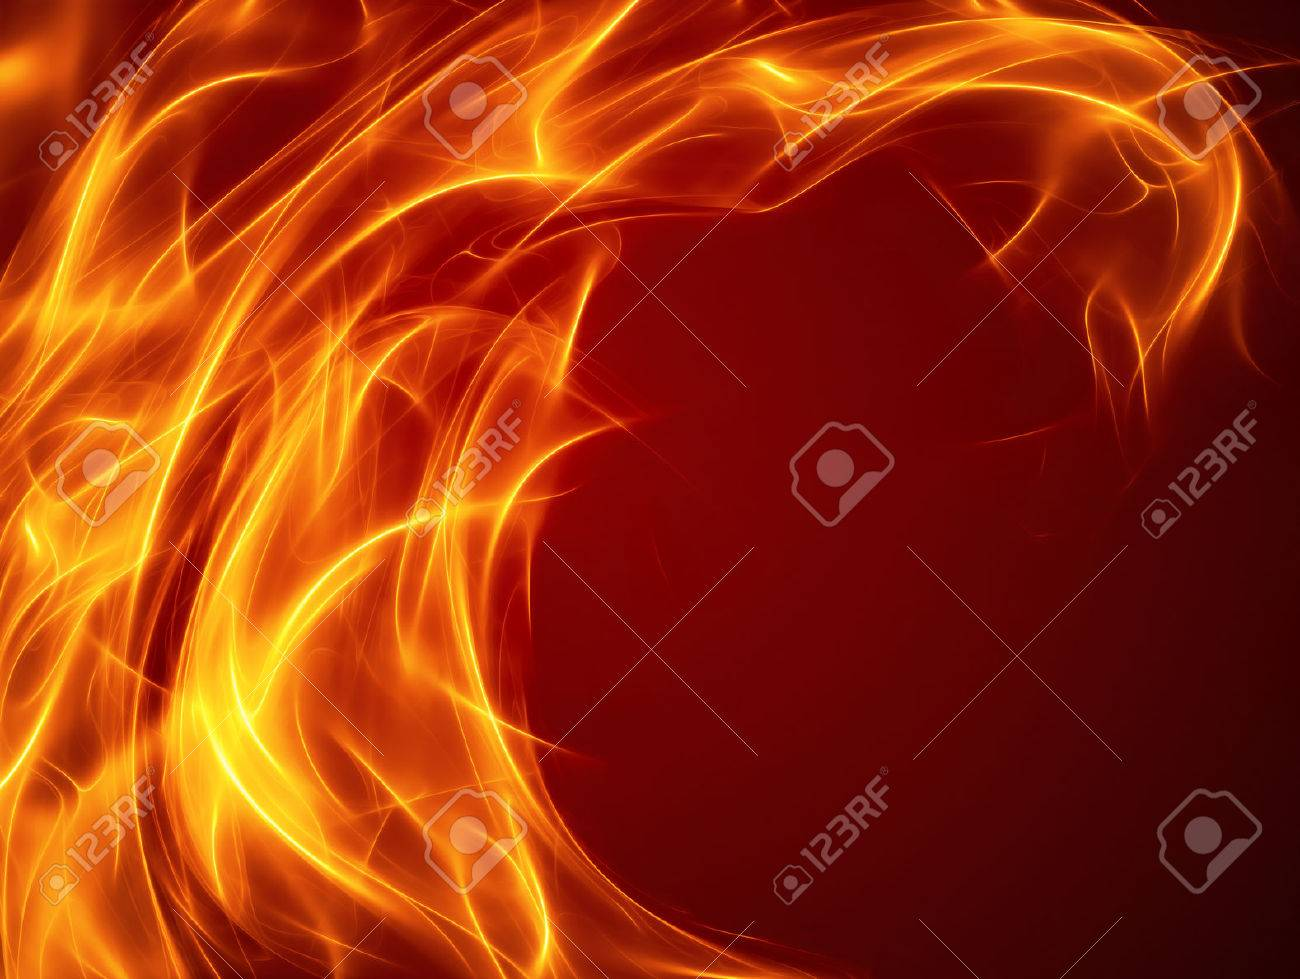 abstract fire background with smooth soft lines - 52584598